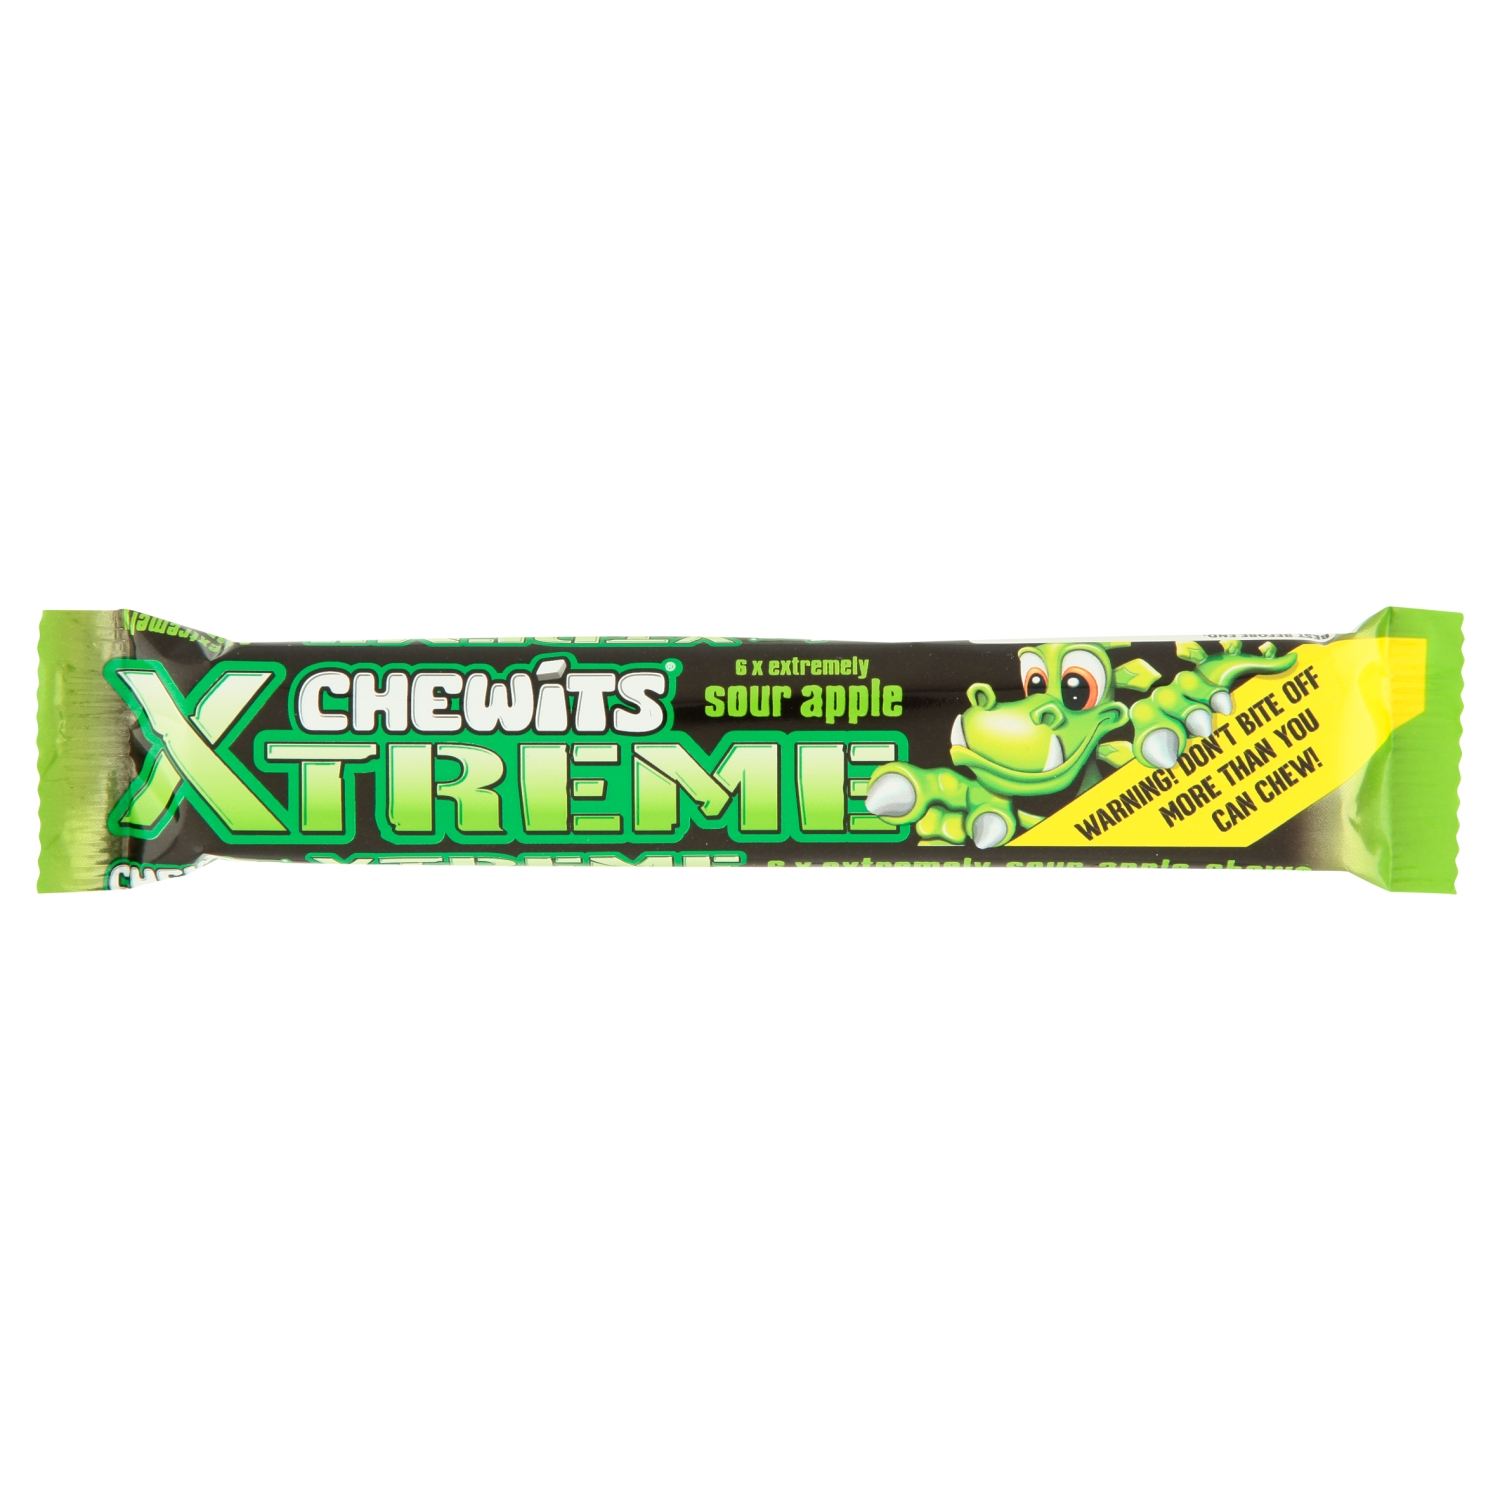 Chewits Xtreme Extremely Sour Apple Chews 34g